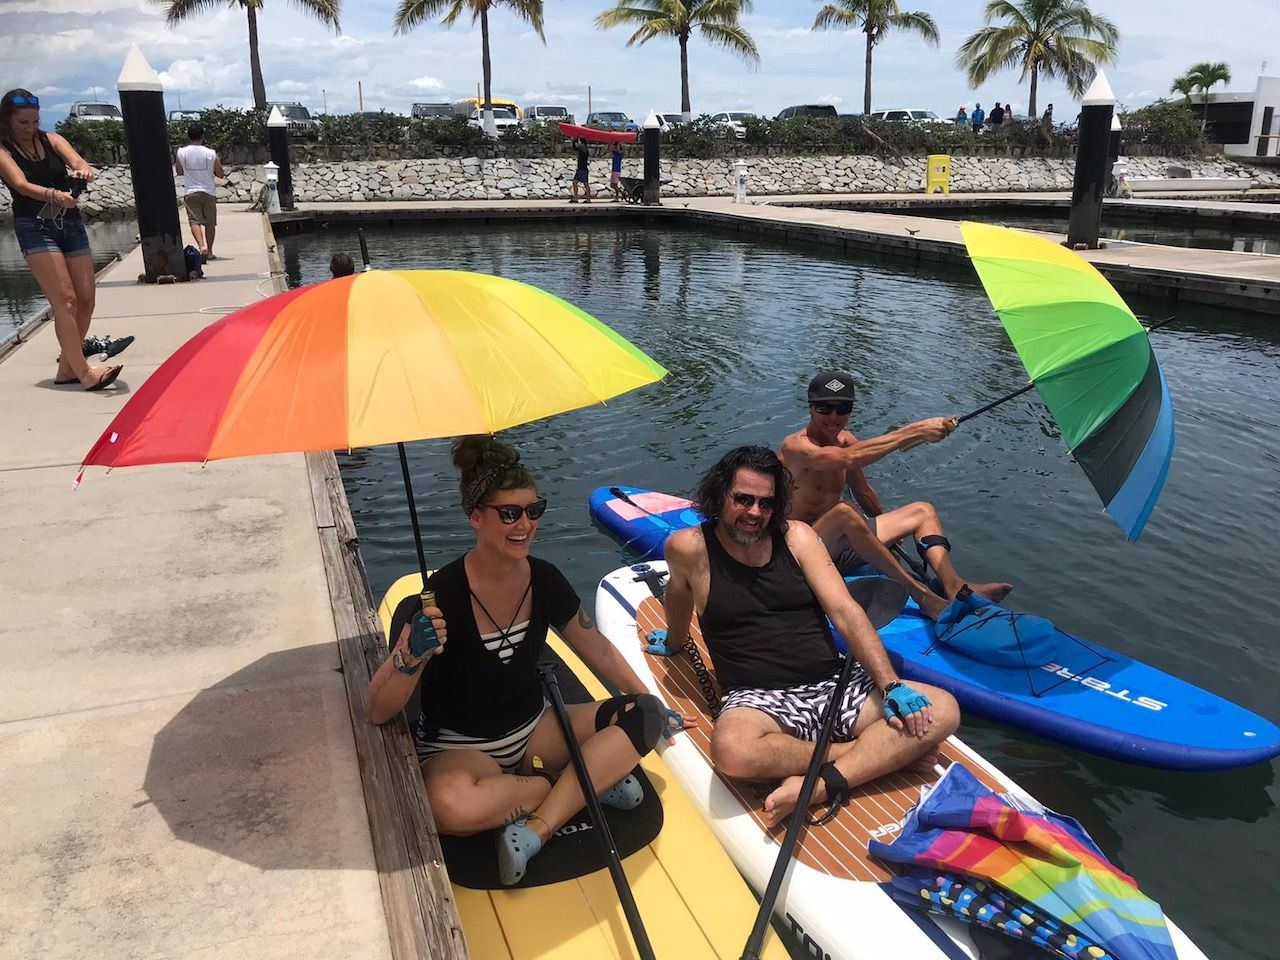 Three smiling people on paddleboards at a dock, side by side. Two of them are holding rainbow-themed umbreallas.